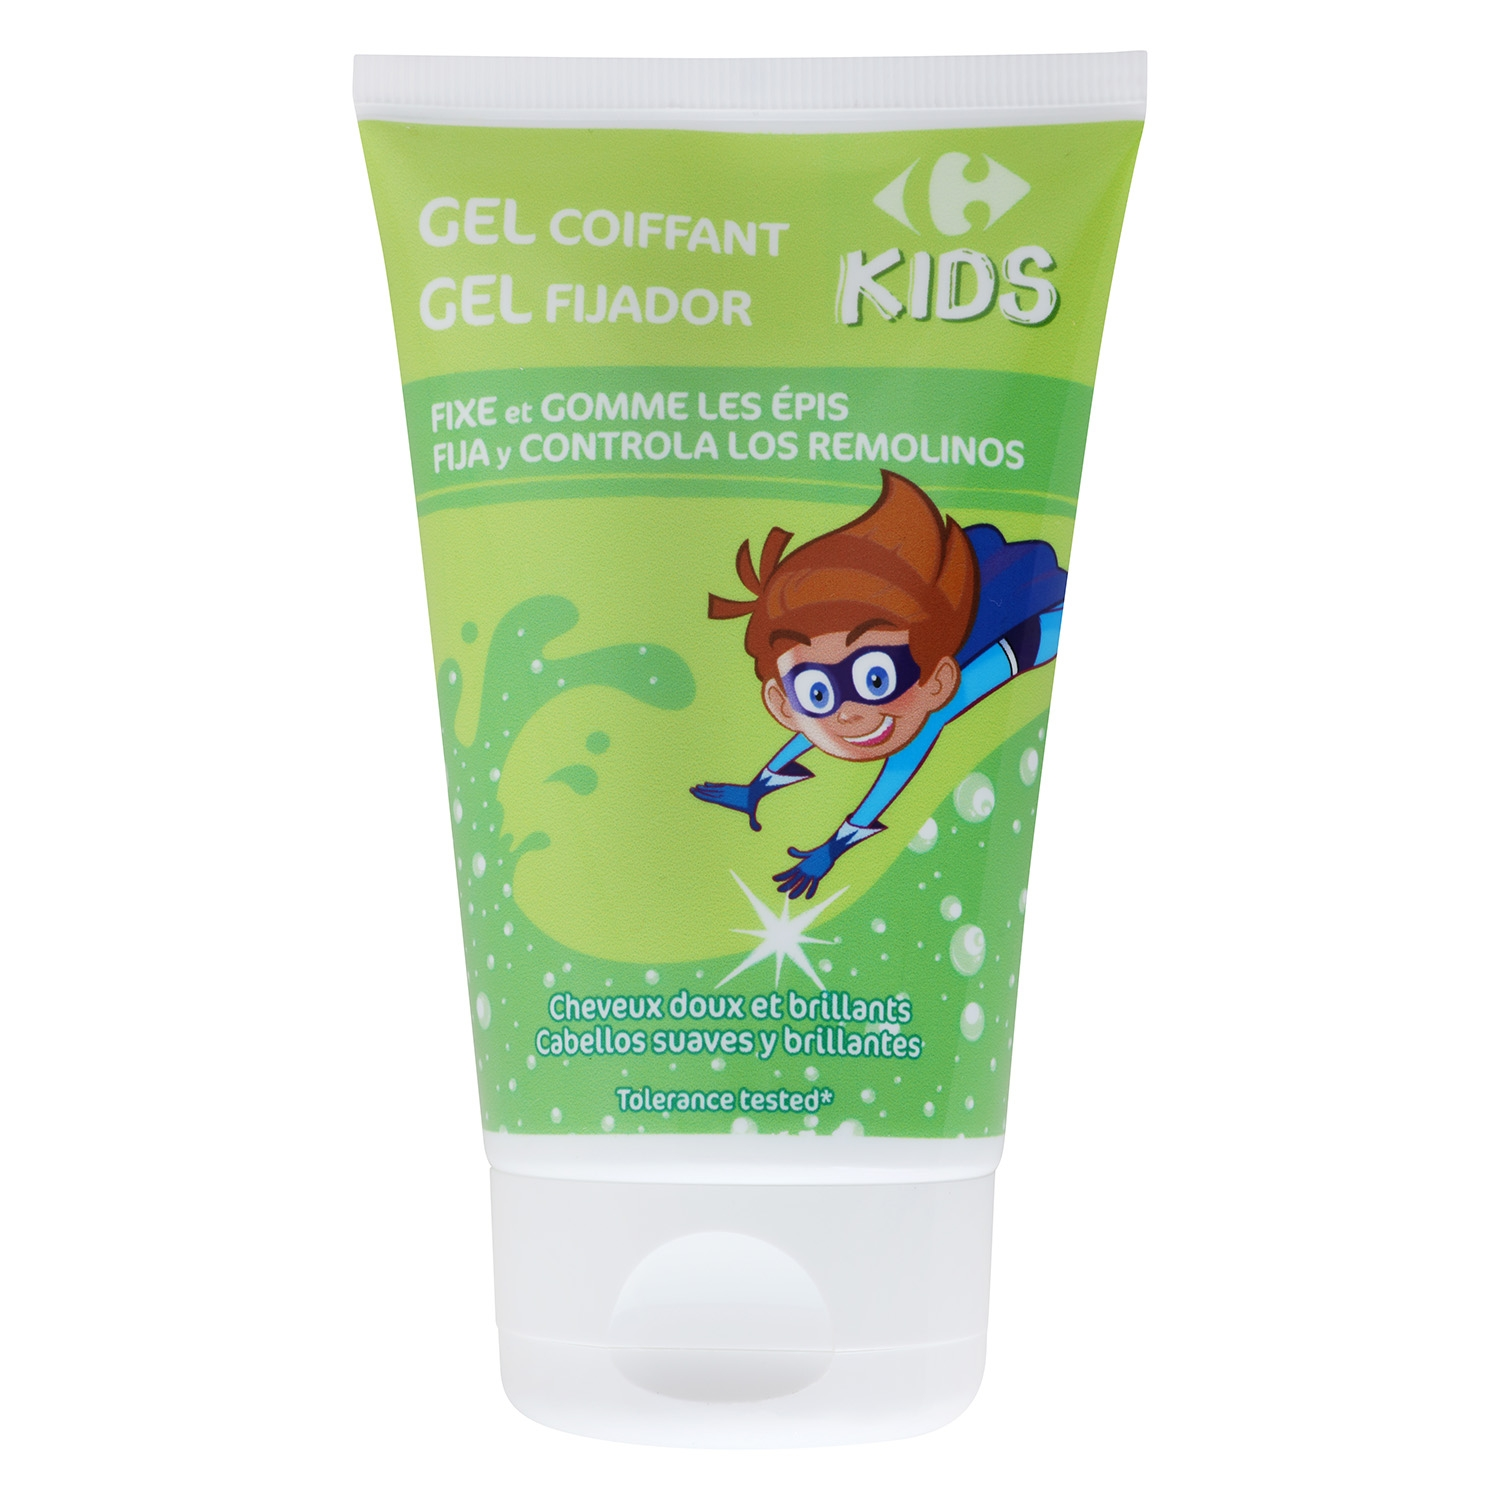 Gel fijador kids Carrefour 125 ml.